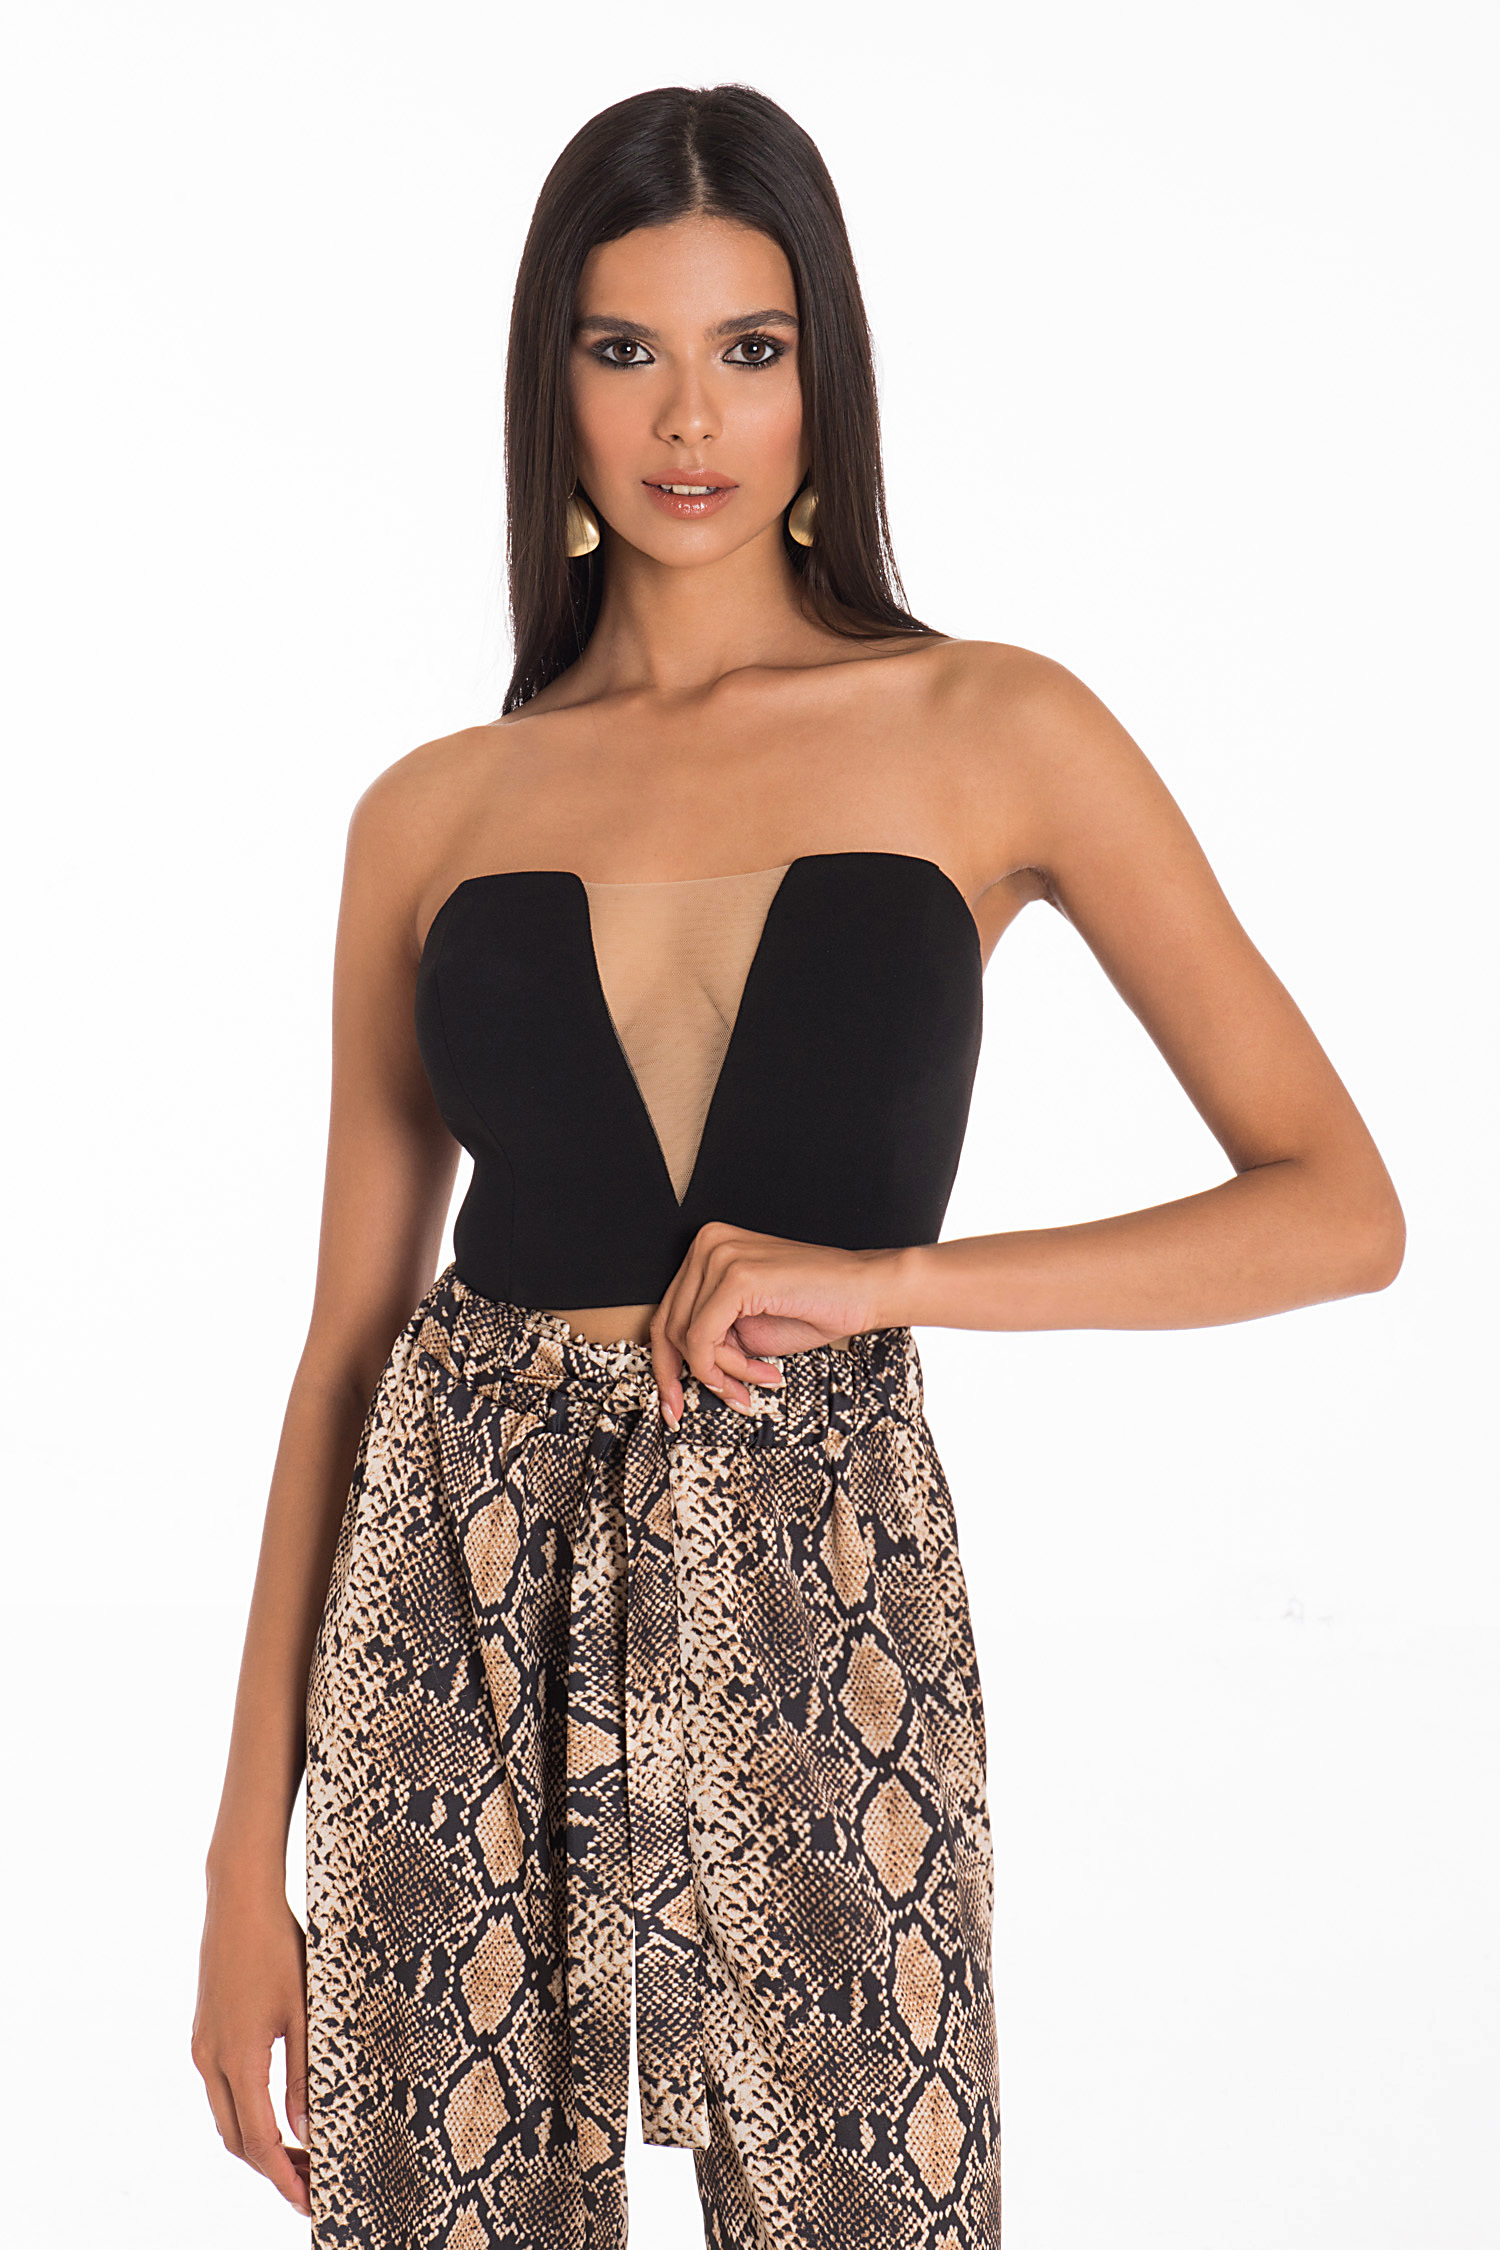 TOP STRAPLESS ΜΕ ΔΙΑΦΑΝΕΙΑ